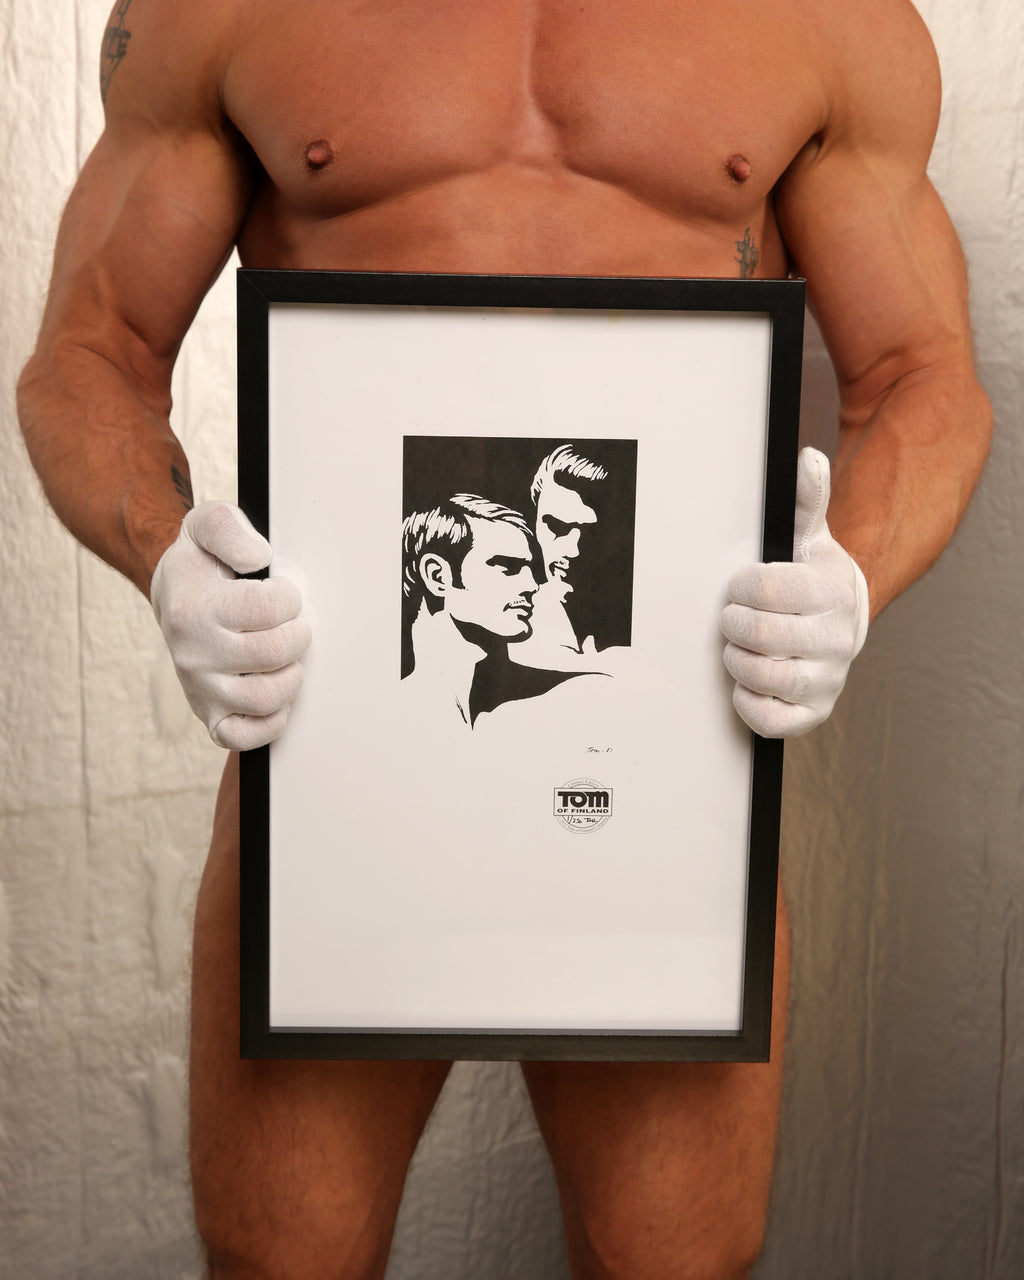 Tom of Finland Untitled 51, 1981